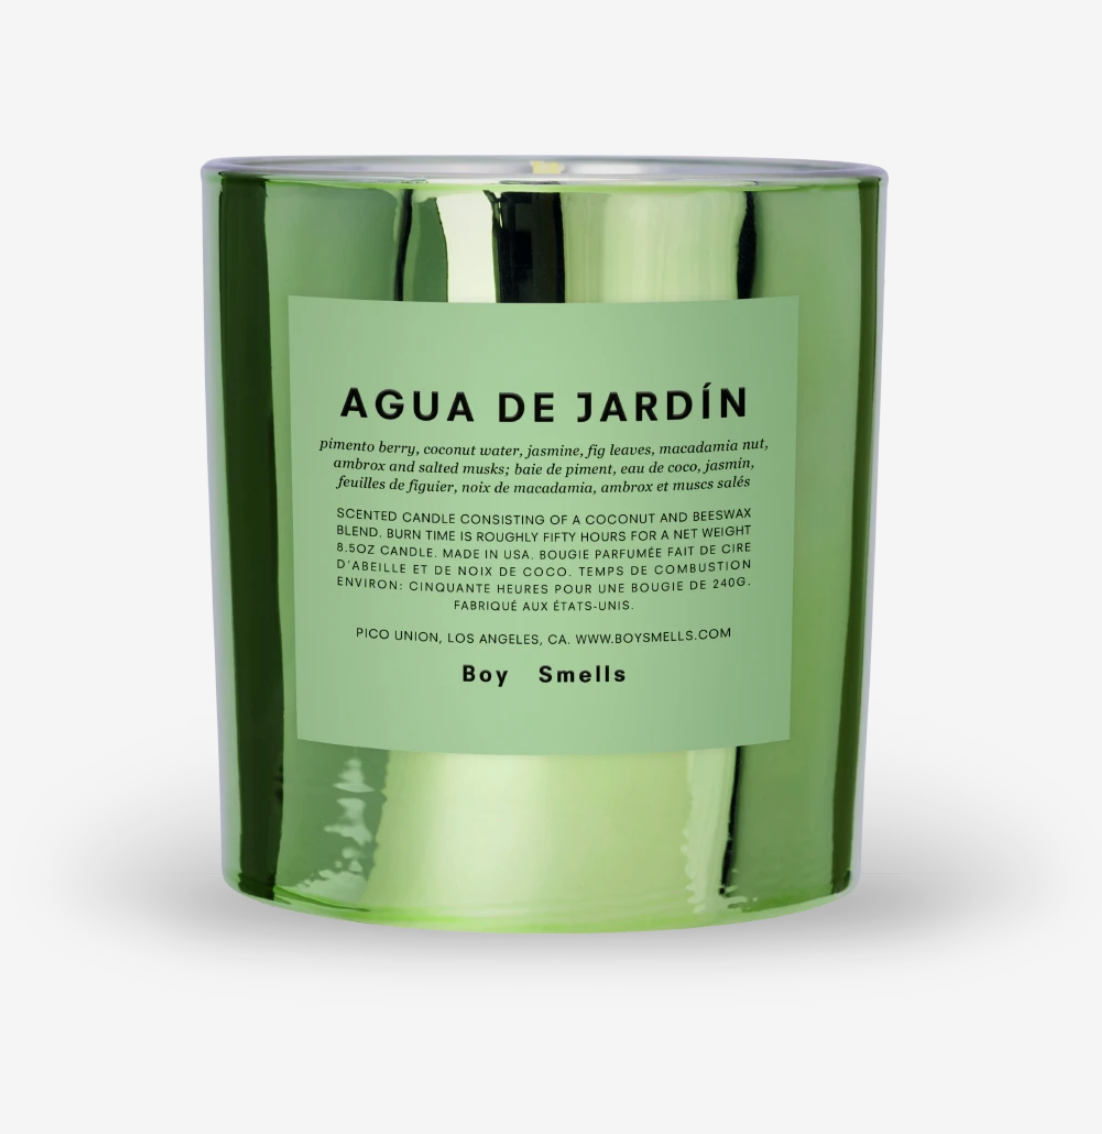 Agua de Jardin Limited Series Candle